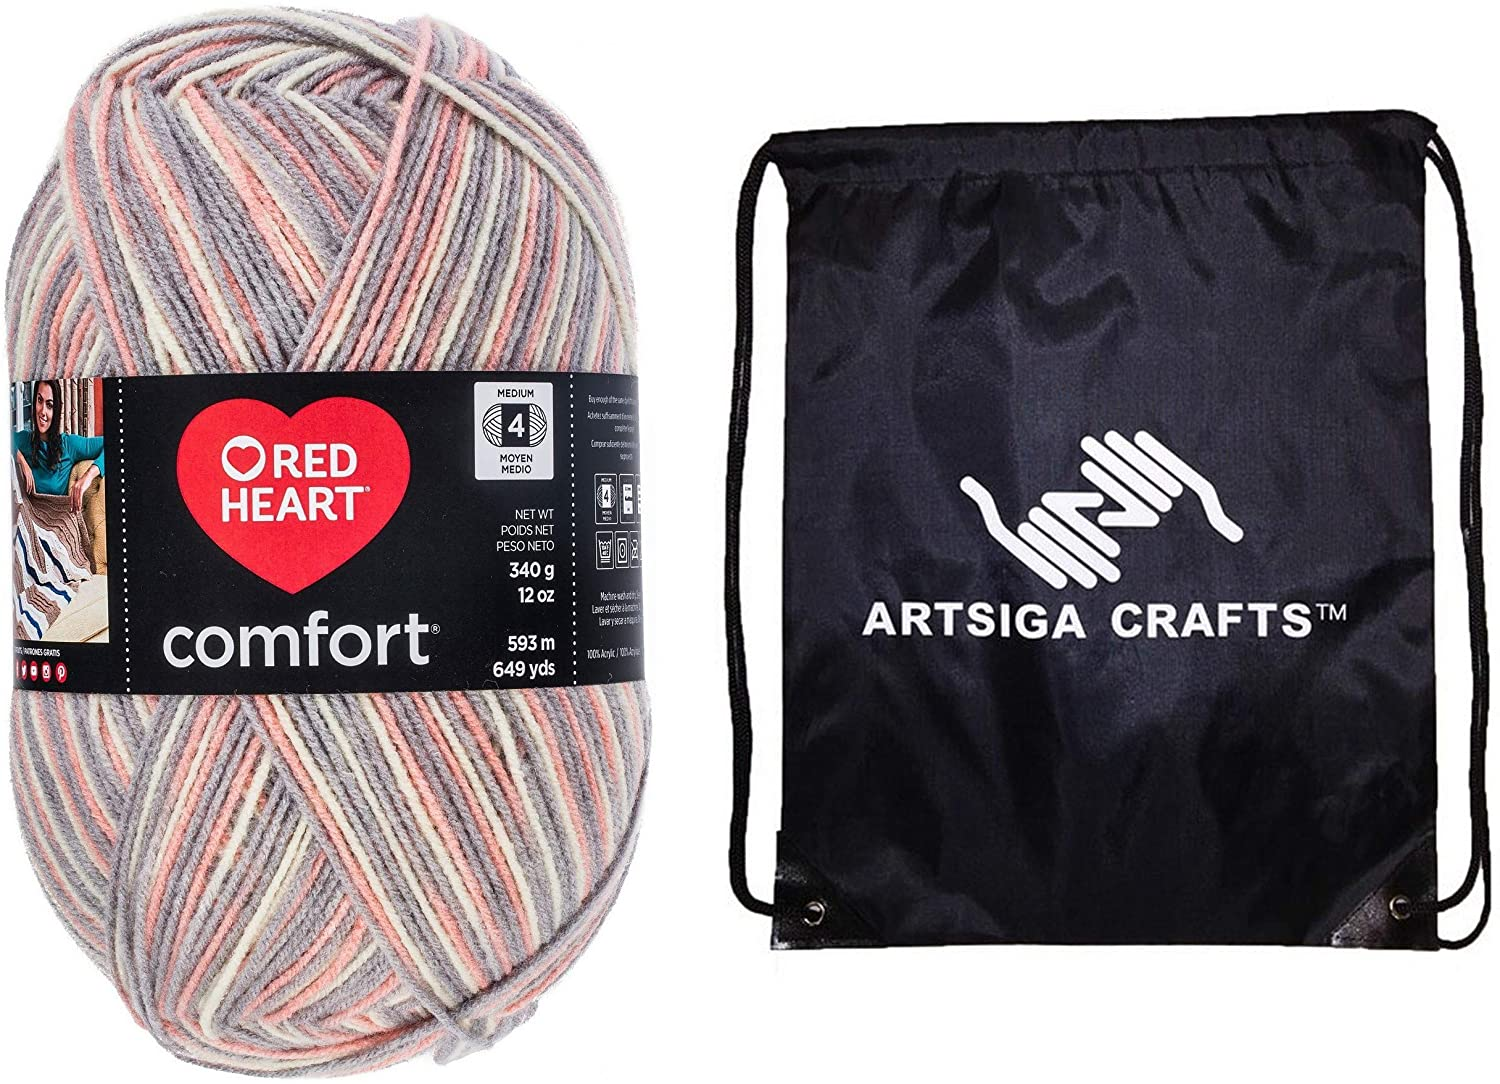 Red Heart Knitting Yarn Comfort Pink and Grey Print 1-Skein Factory Pack (Same Dyelot) E707D-4152 Bundle with 1 Artsiga Crafts Project Bag